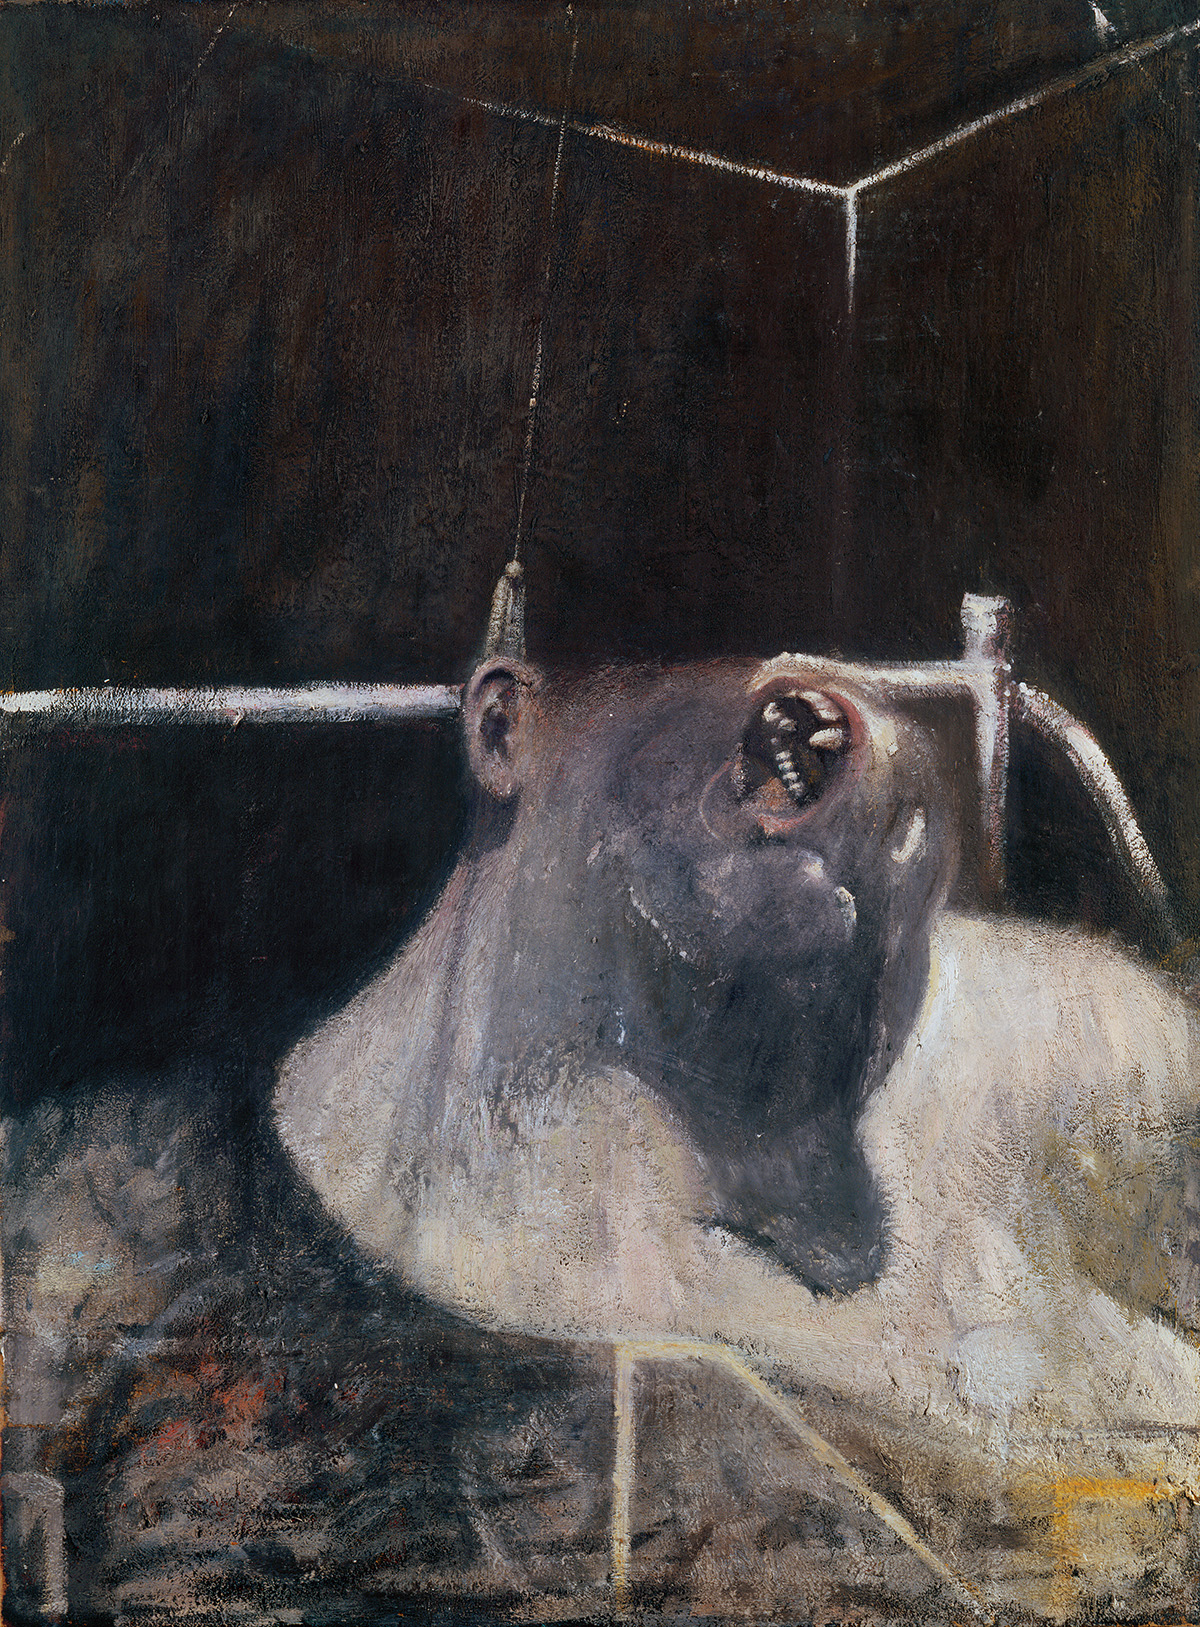 ncis Bacon, Head I, 1948. Oil and tempera on hardboard. CR number 48-01. © The Estate of Francis Bacon / DACS London 2019. All rights reserved.ncis Bacon, Head I, 1948. Oil and tempera on hardboard. CR number 48-01. © The Estate of Francis Bacon / DACS London 2019. All rights reserved.